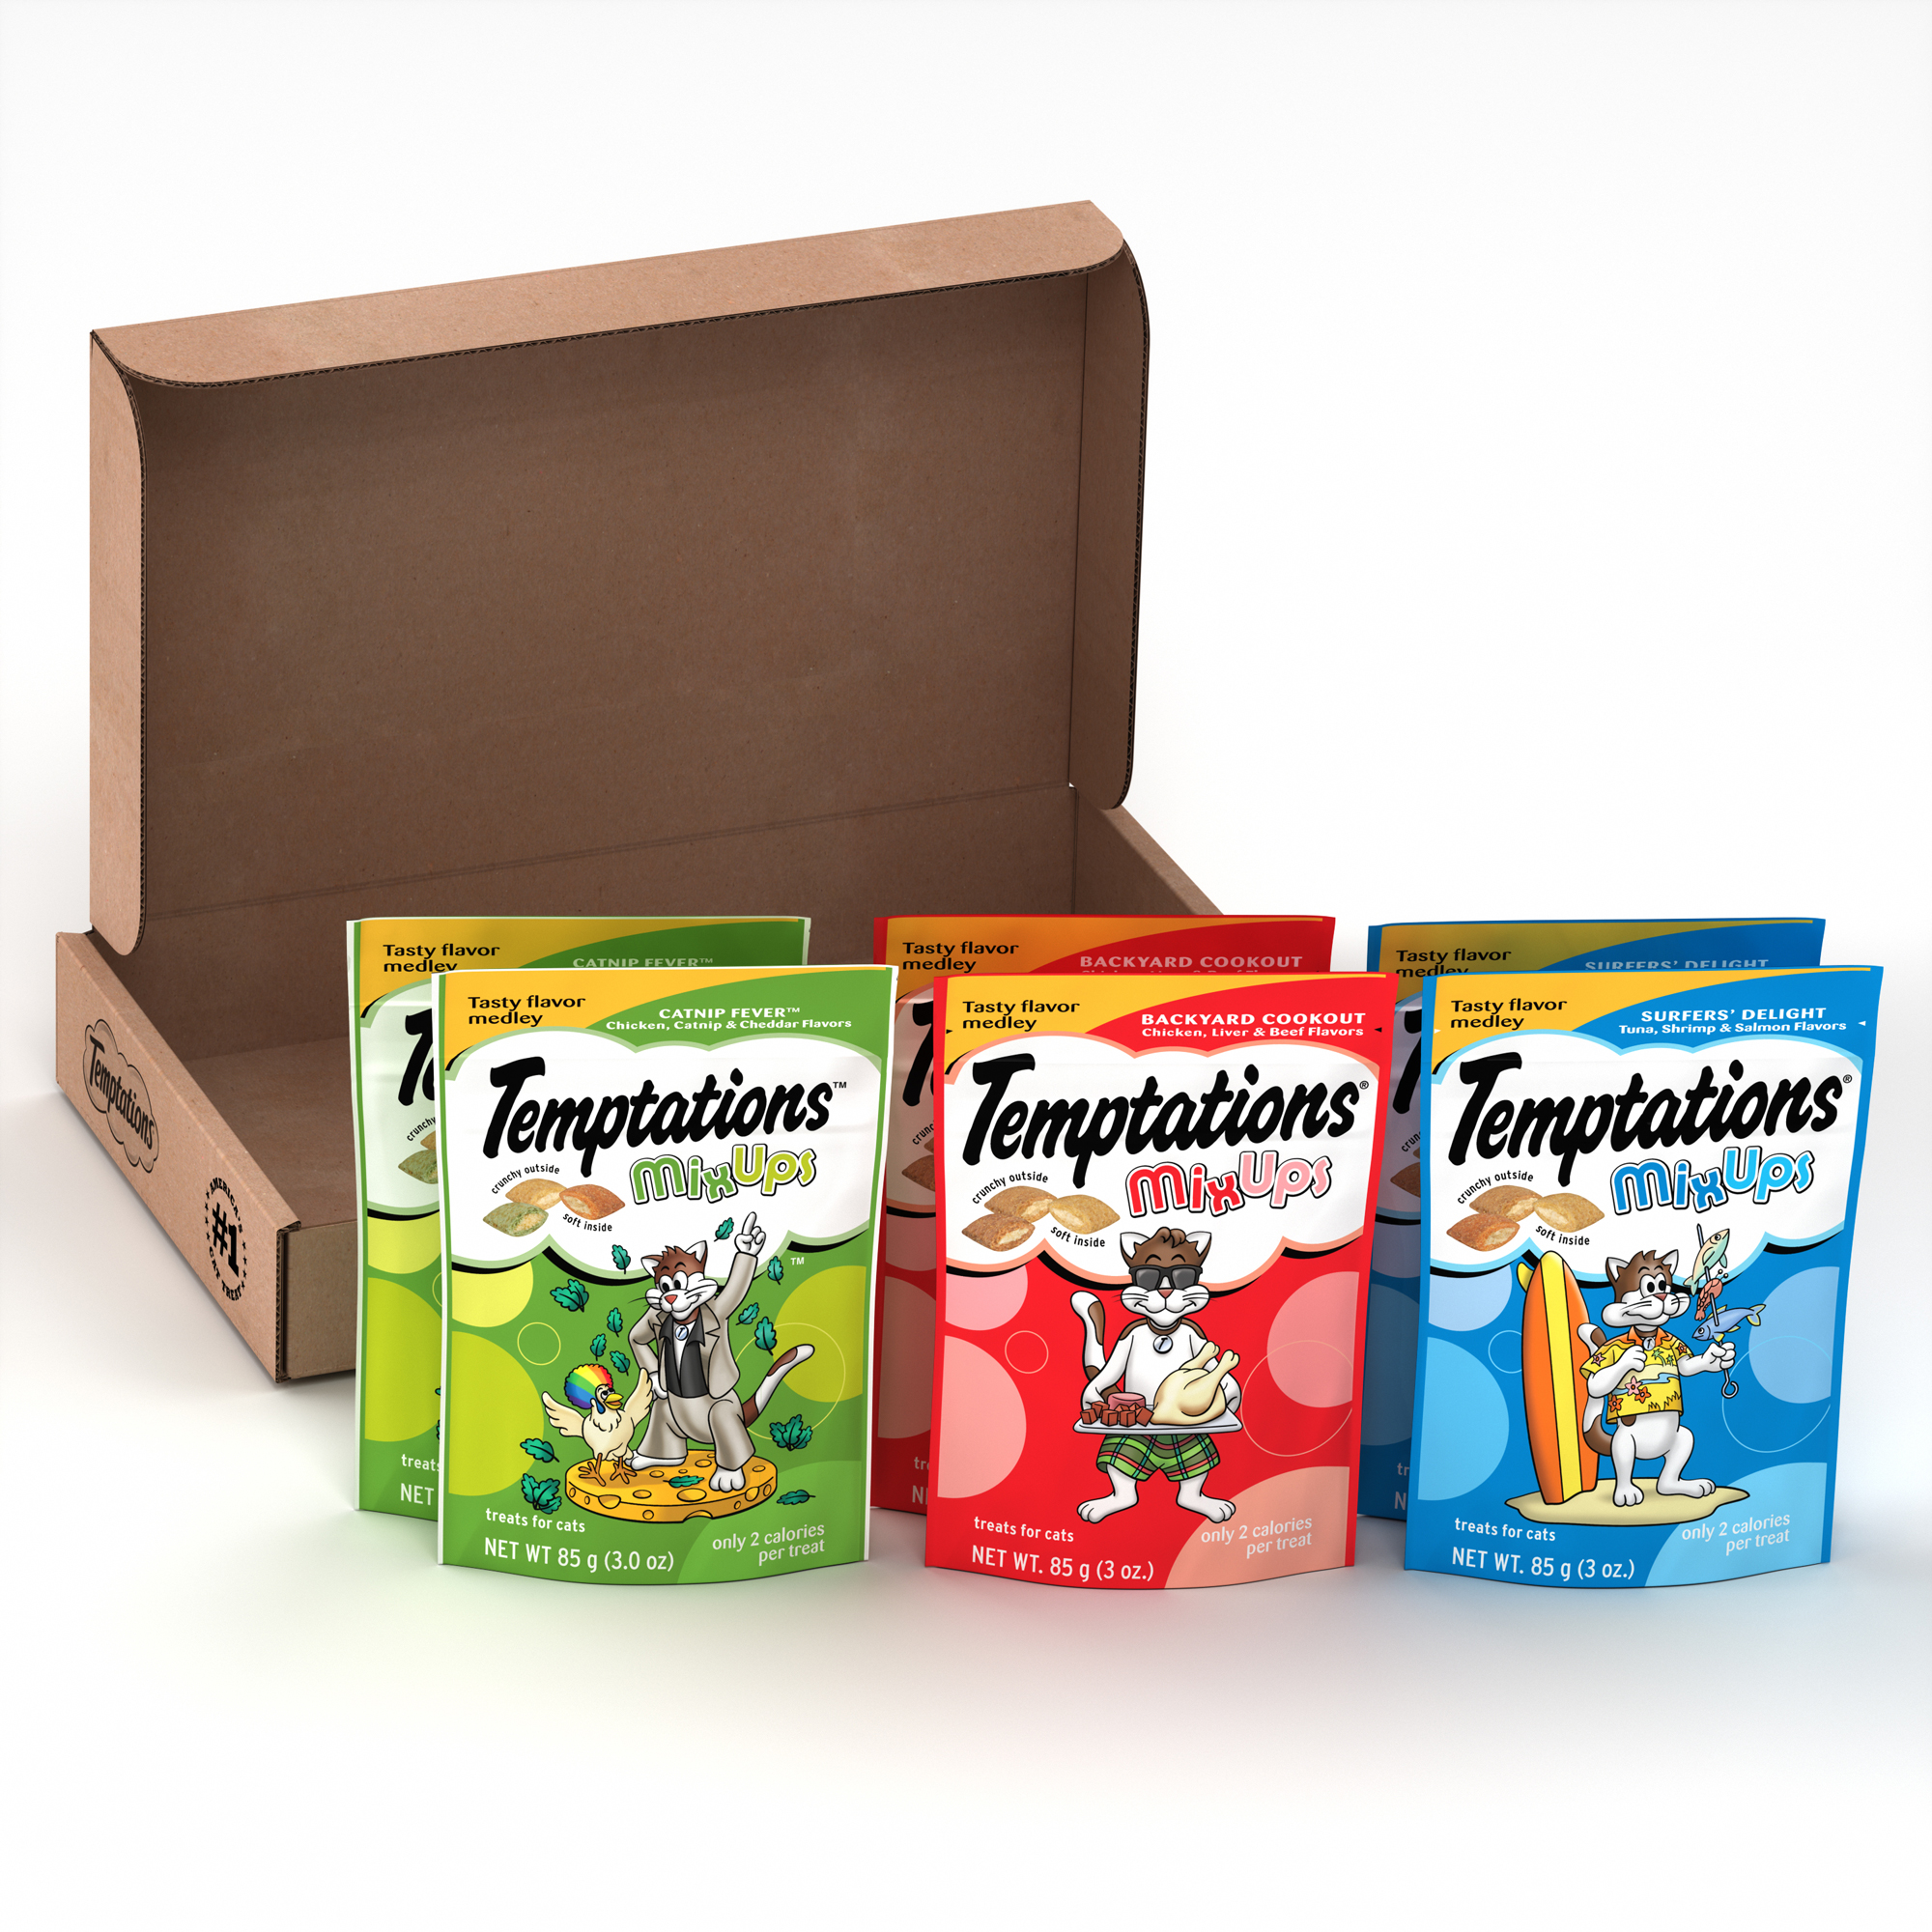 TEMPTATIONS MixUps Cat Treats Variety Pack in Backyard Cookout, Surfer's Delight, and Catnip Fever Flavors, 3 oz. Pouches (Pack of 6)